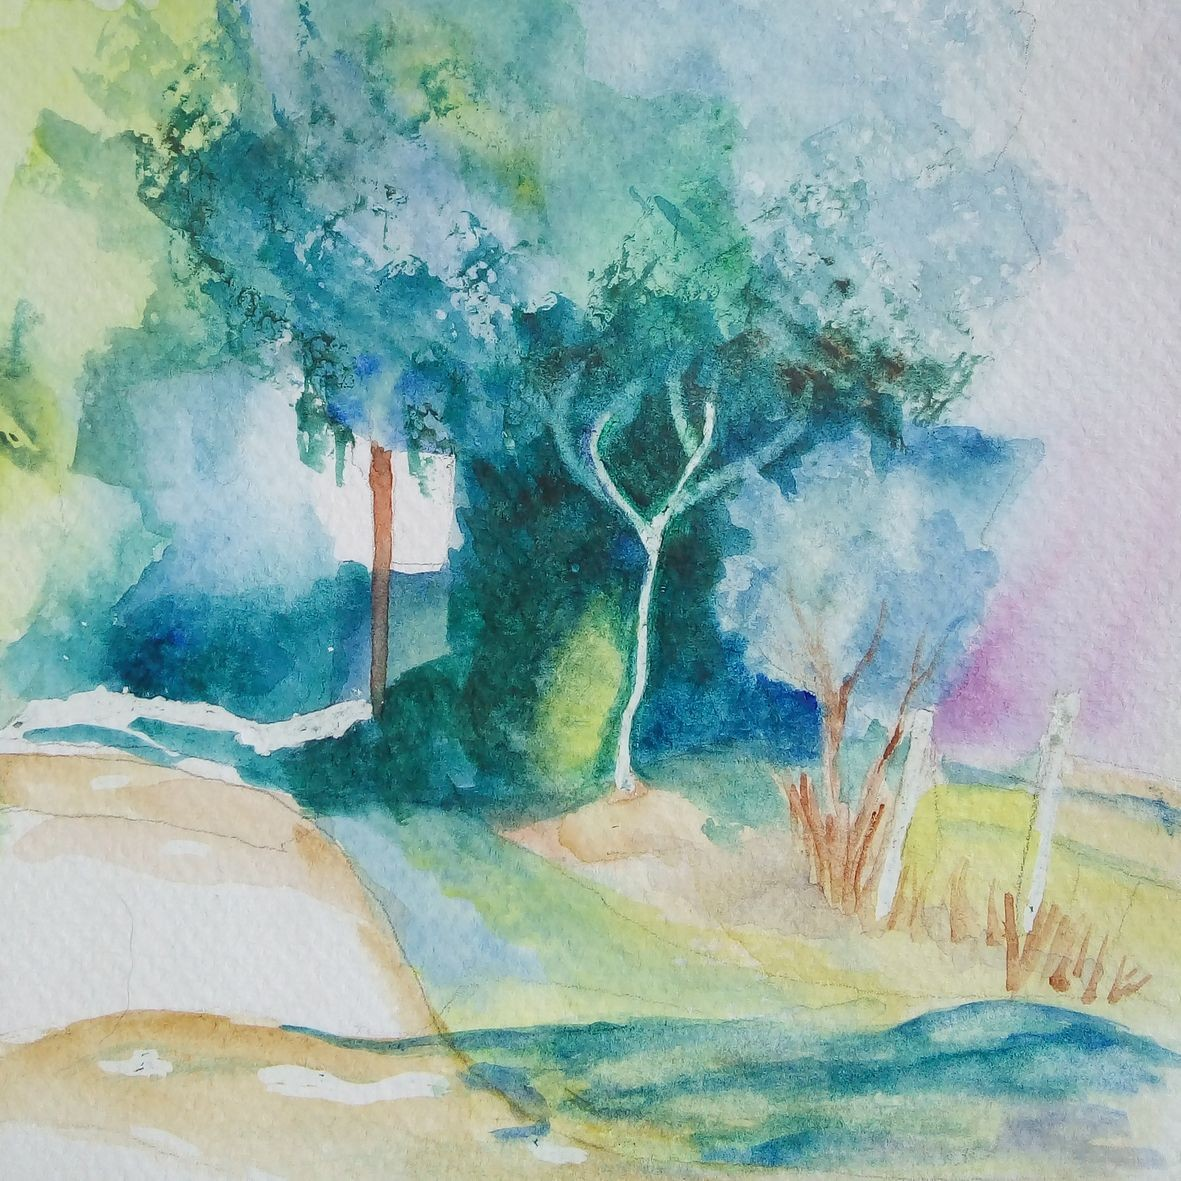 Monique c chemin creu aquarelle 04 2021